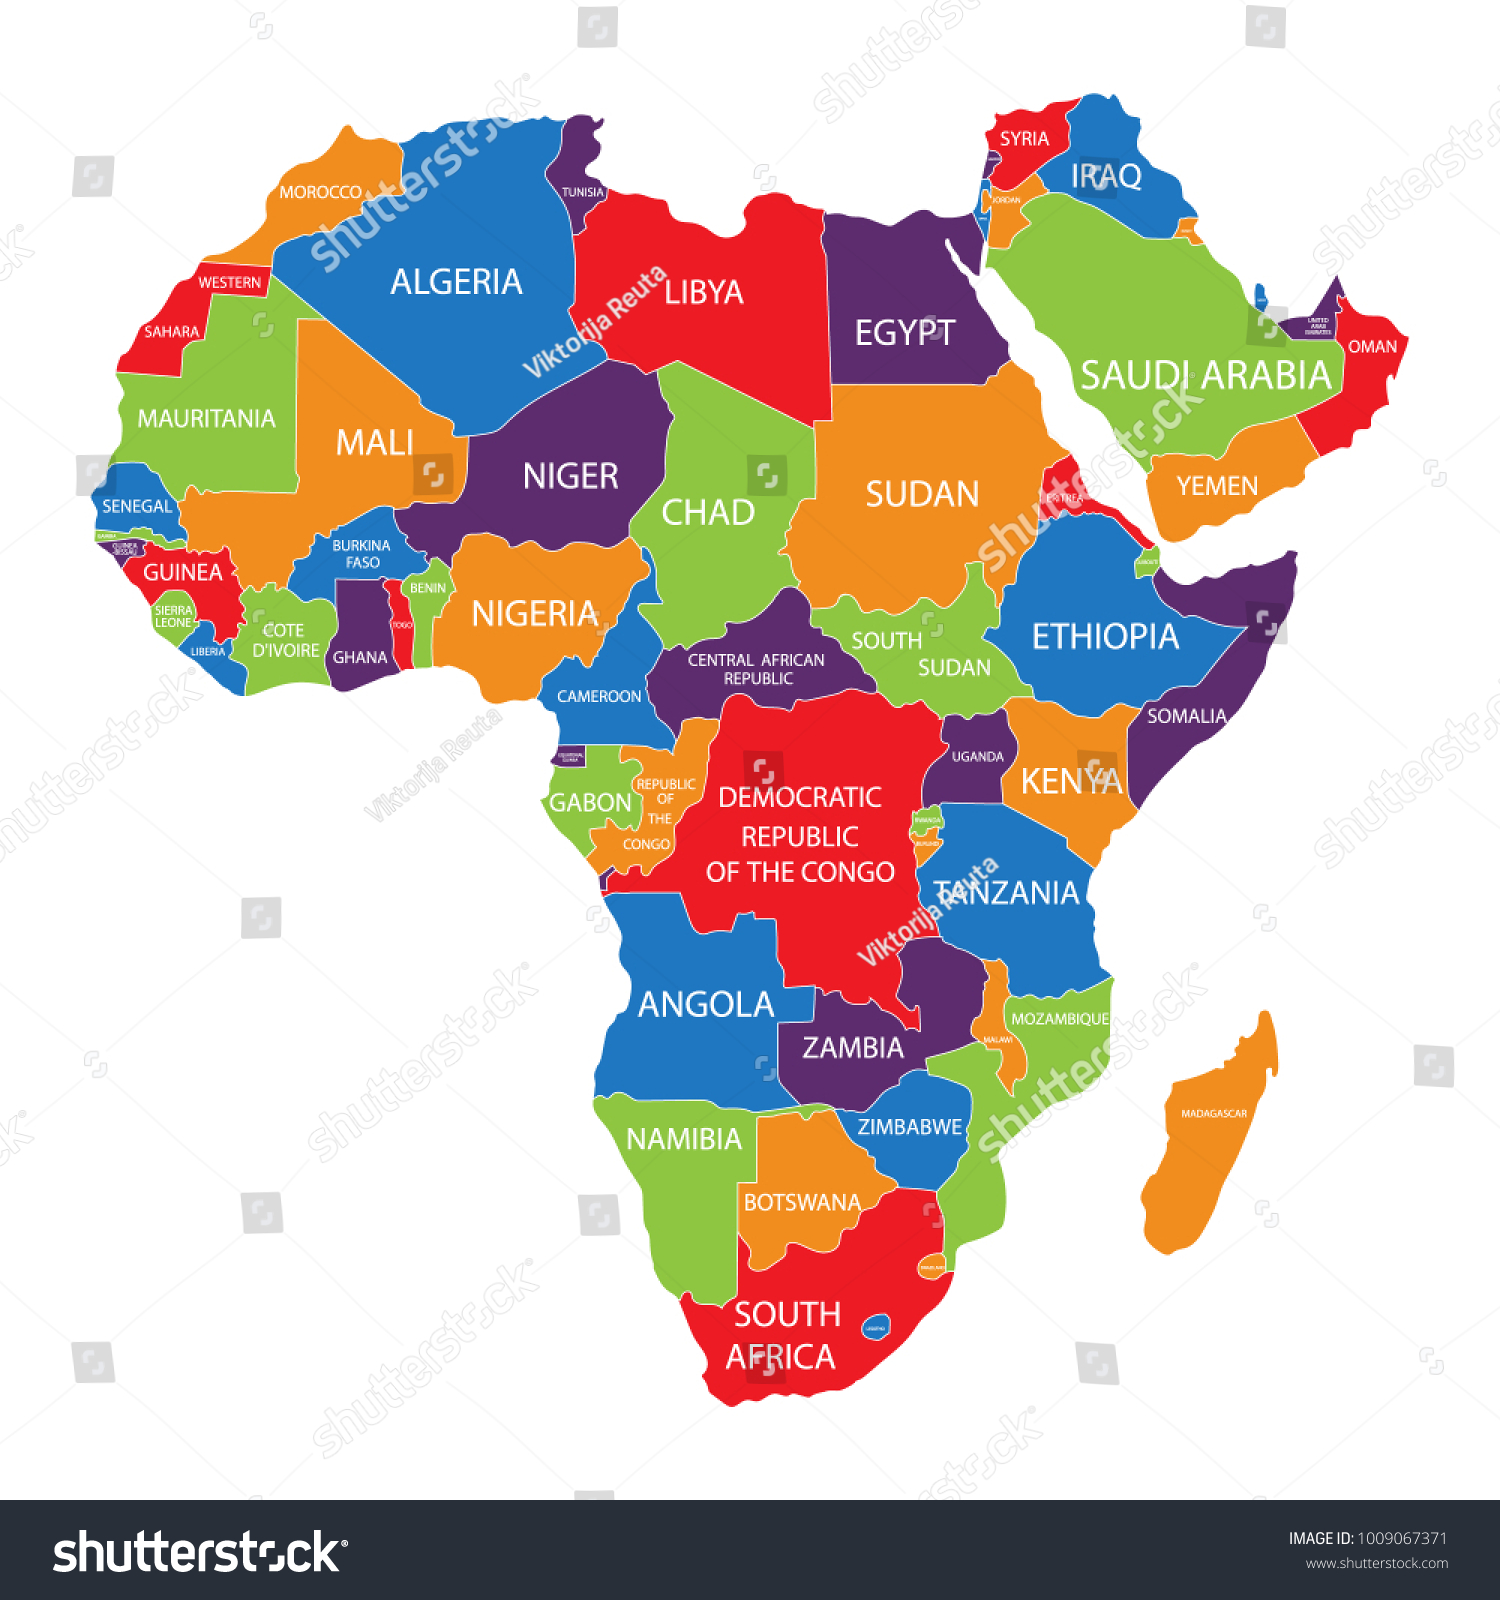 Raster Illustration Africa Map Countries Names Stock Illustration